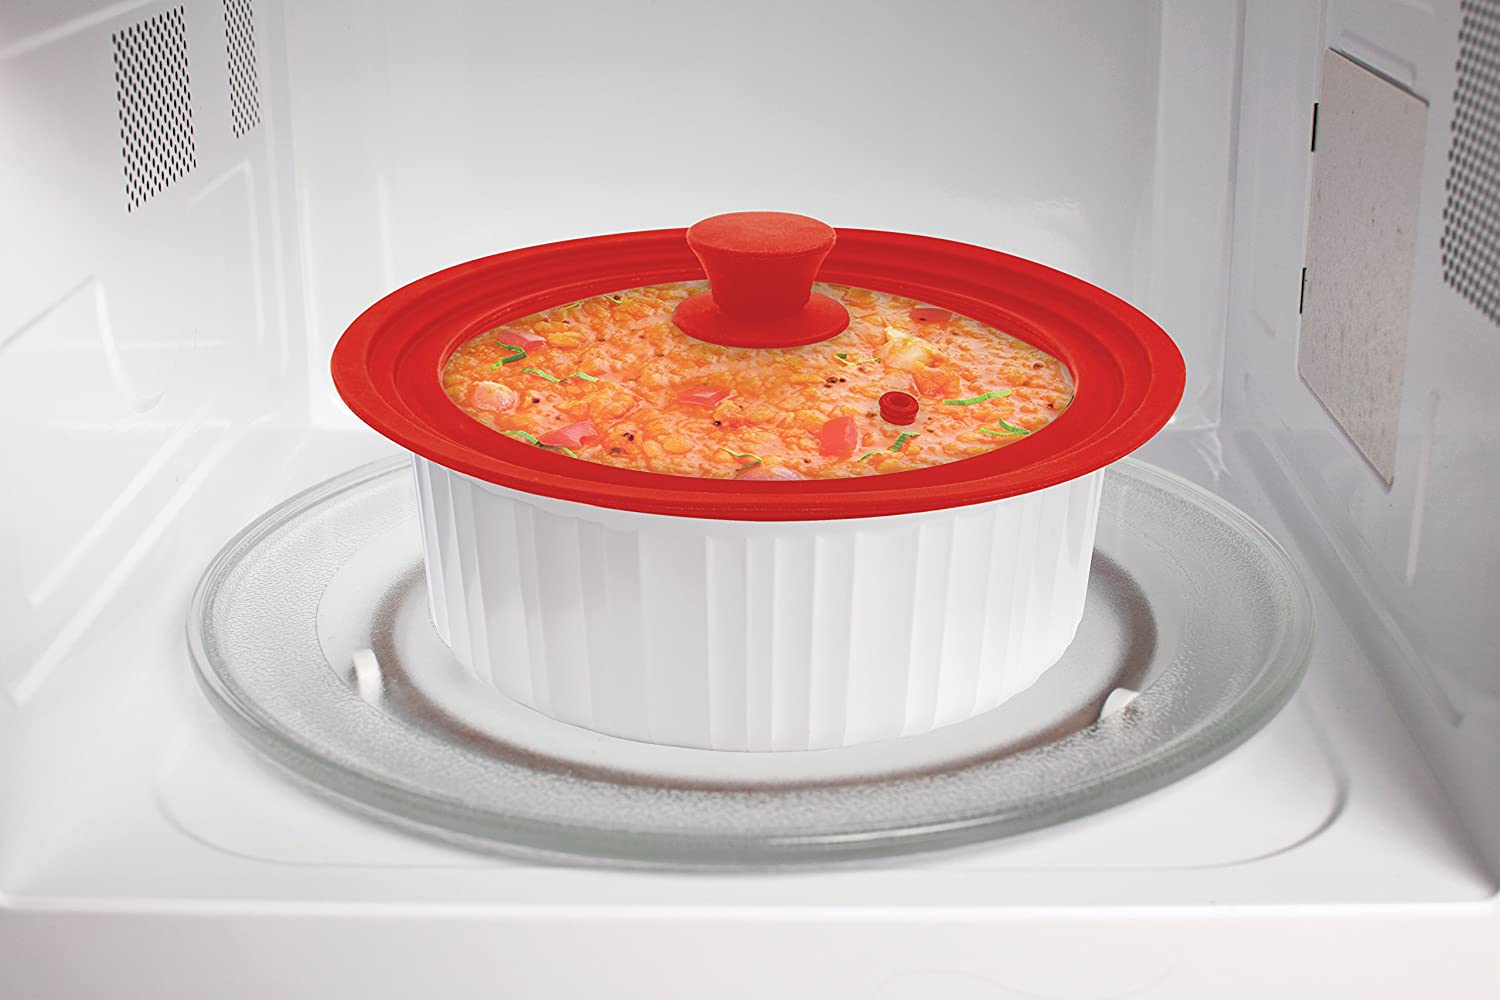 HIC Harold Import Co The World/'s Greatest Universal Pot Lid and Microwave Cooking Cover Tempered Glass and Silicone 8.5 to 11.5-Inches Red 34012 Fits Bowls and Cookware